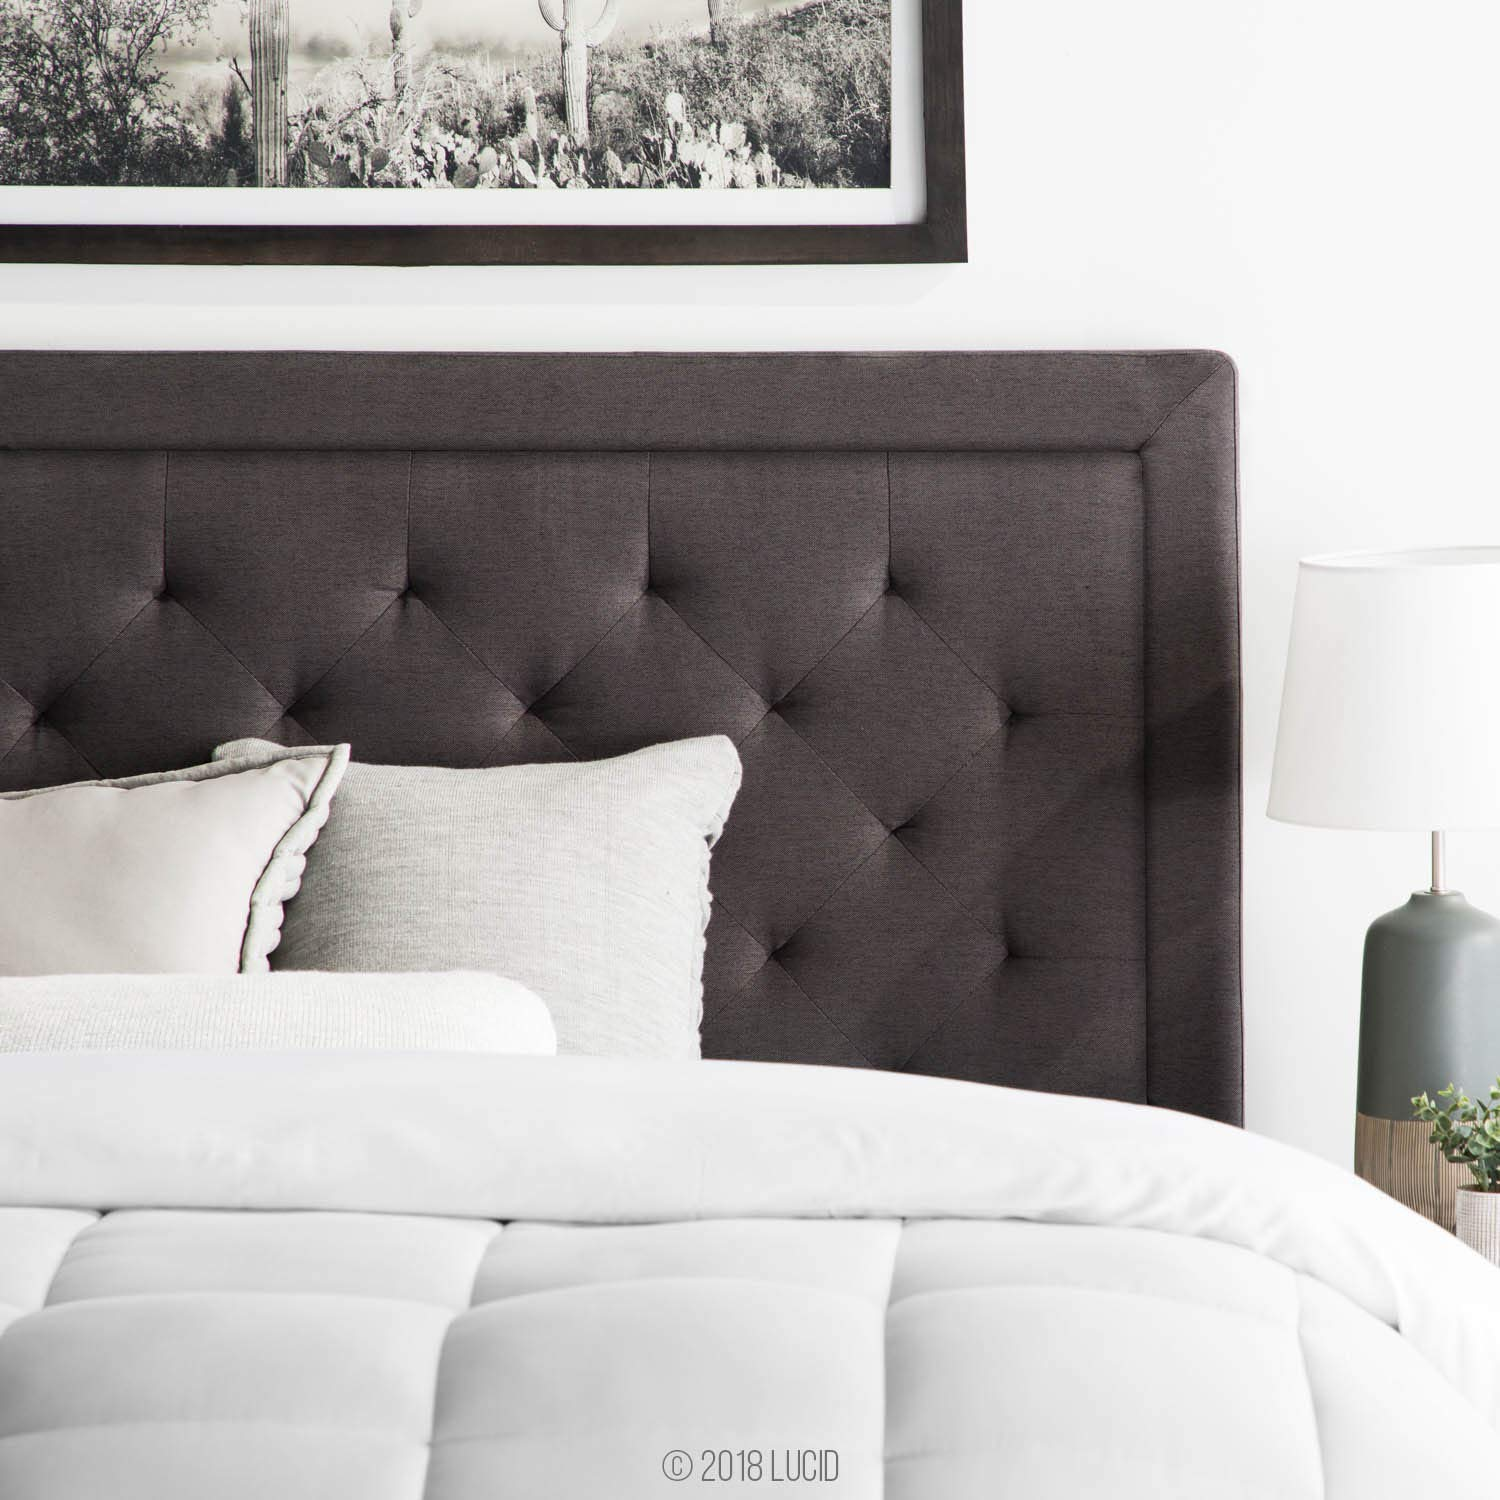 LUCID Bordered Upholstered Headboard with Diamond Tufting, Queen, Charcoal by LUCID